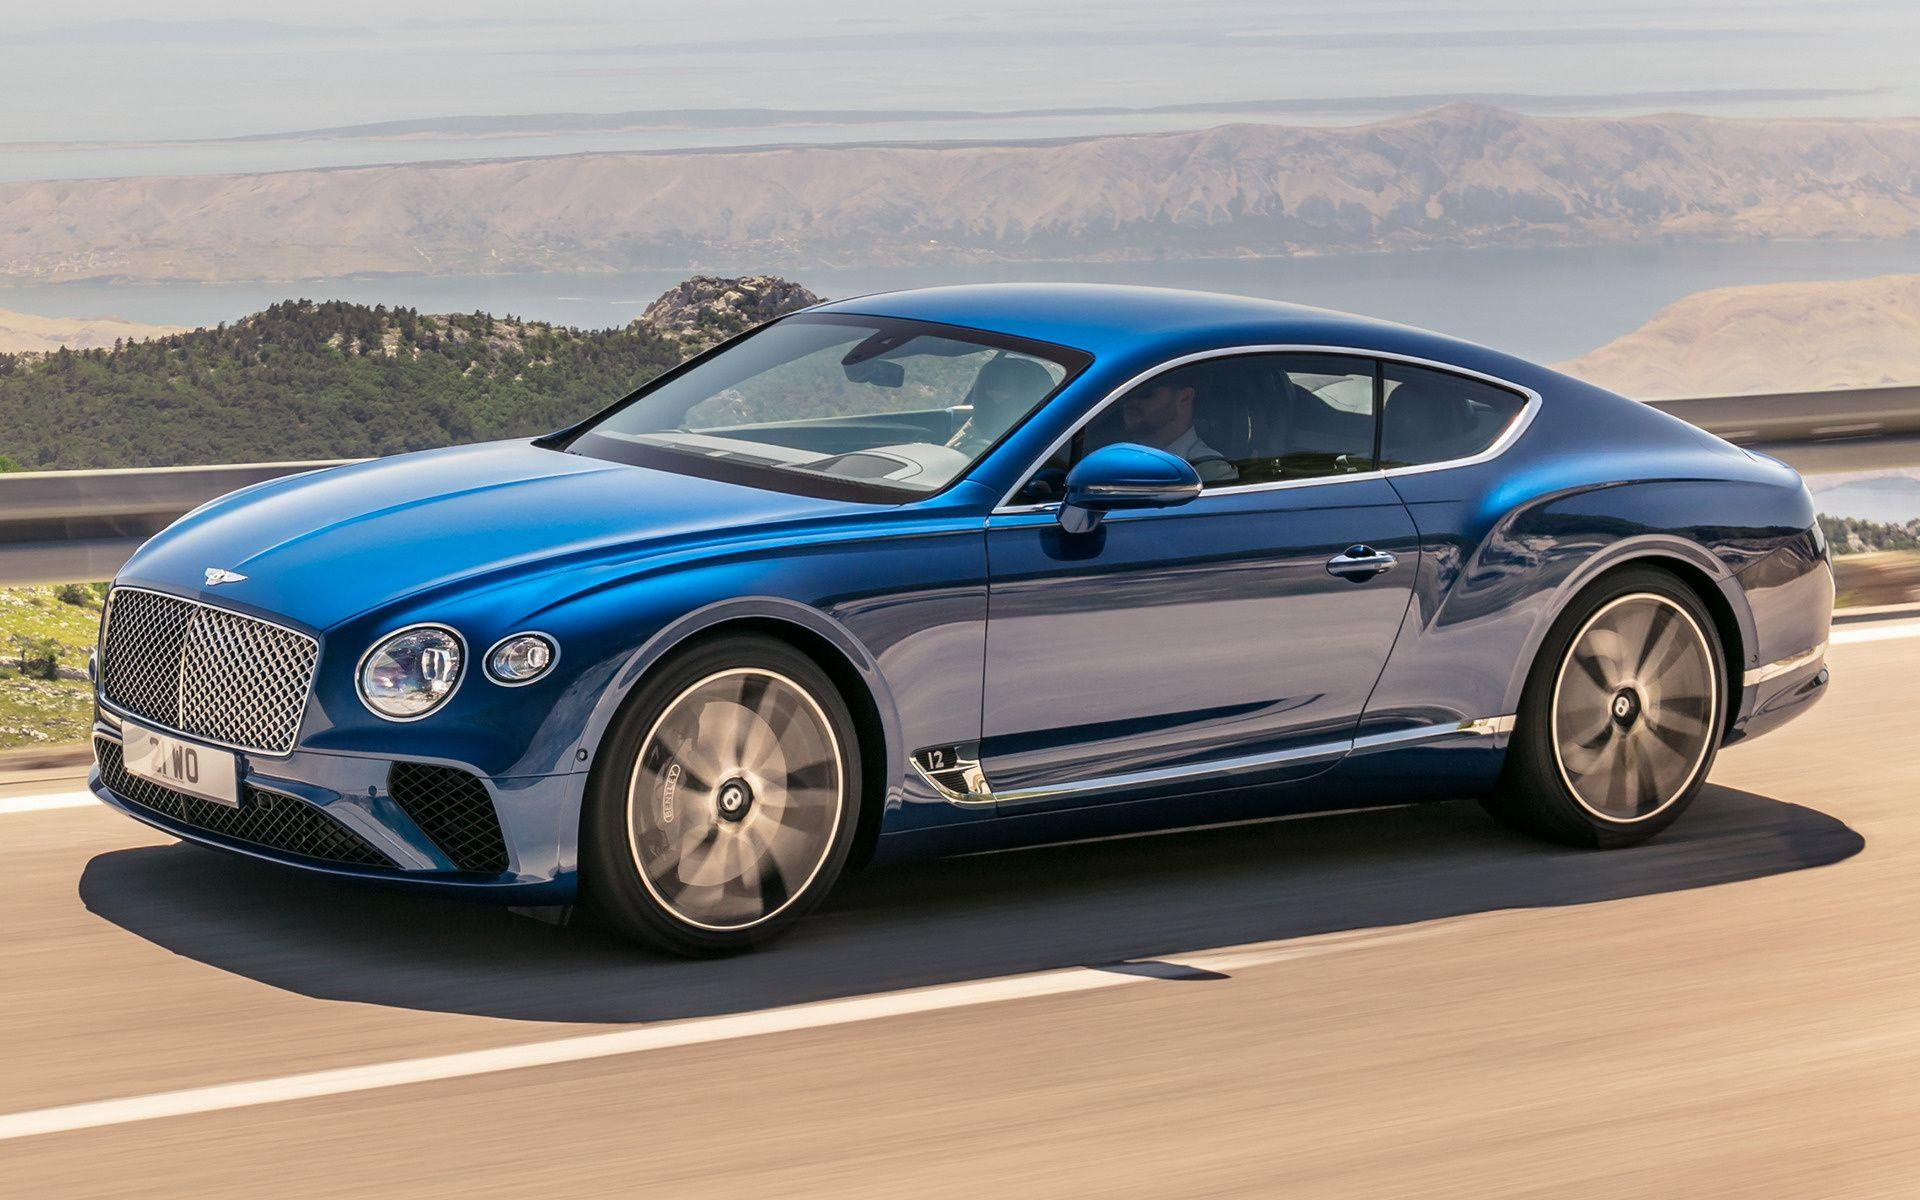 Bentley Continental GT (2018) Wallpapers and HD Images - Car Pixel